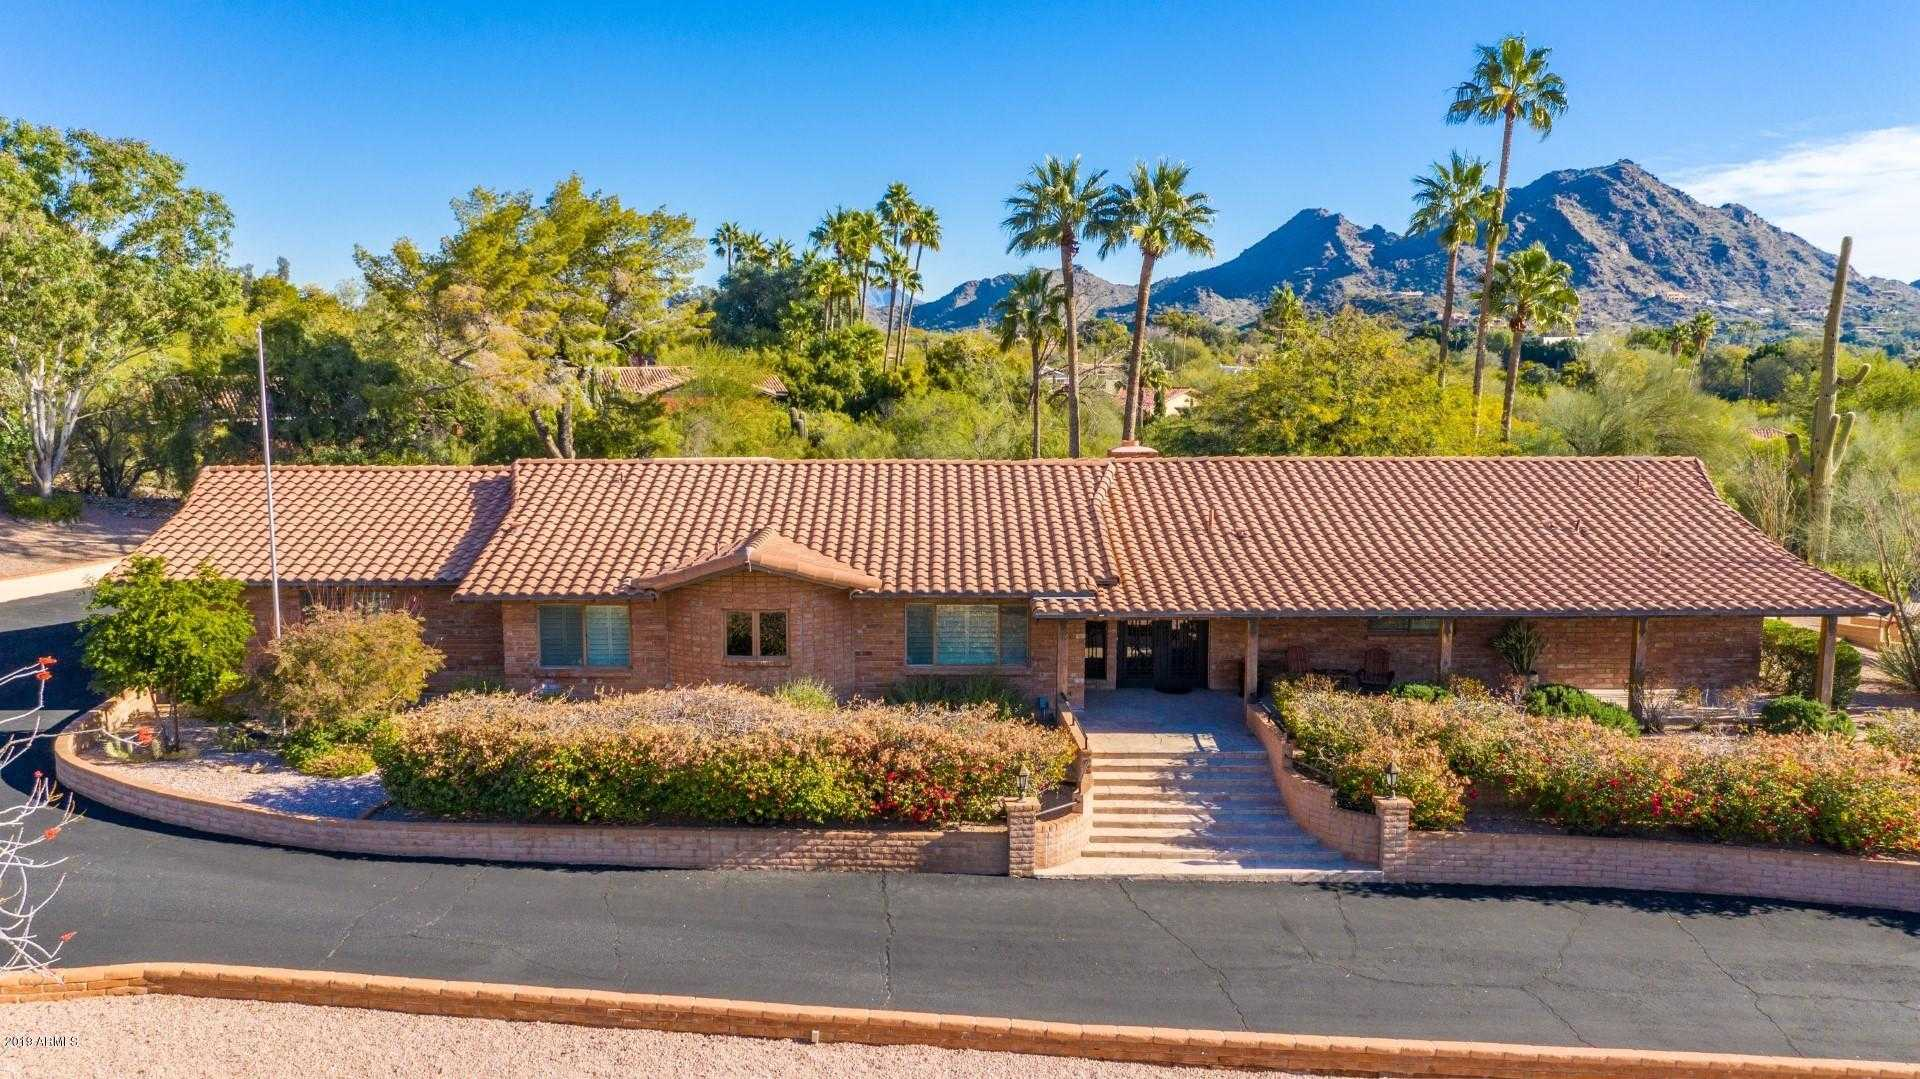 $1,625,000 - 3Br/3Ba - Home for Sale in Paradise Hills Estates, Paradise Valley